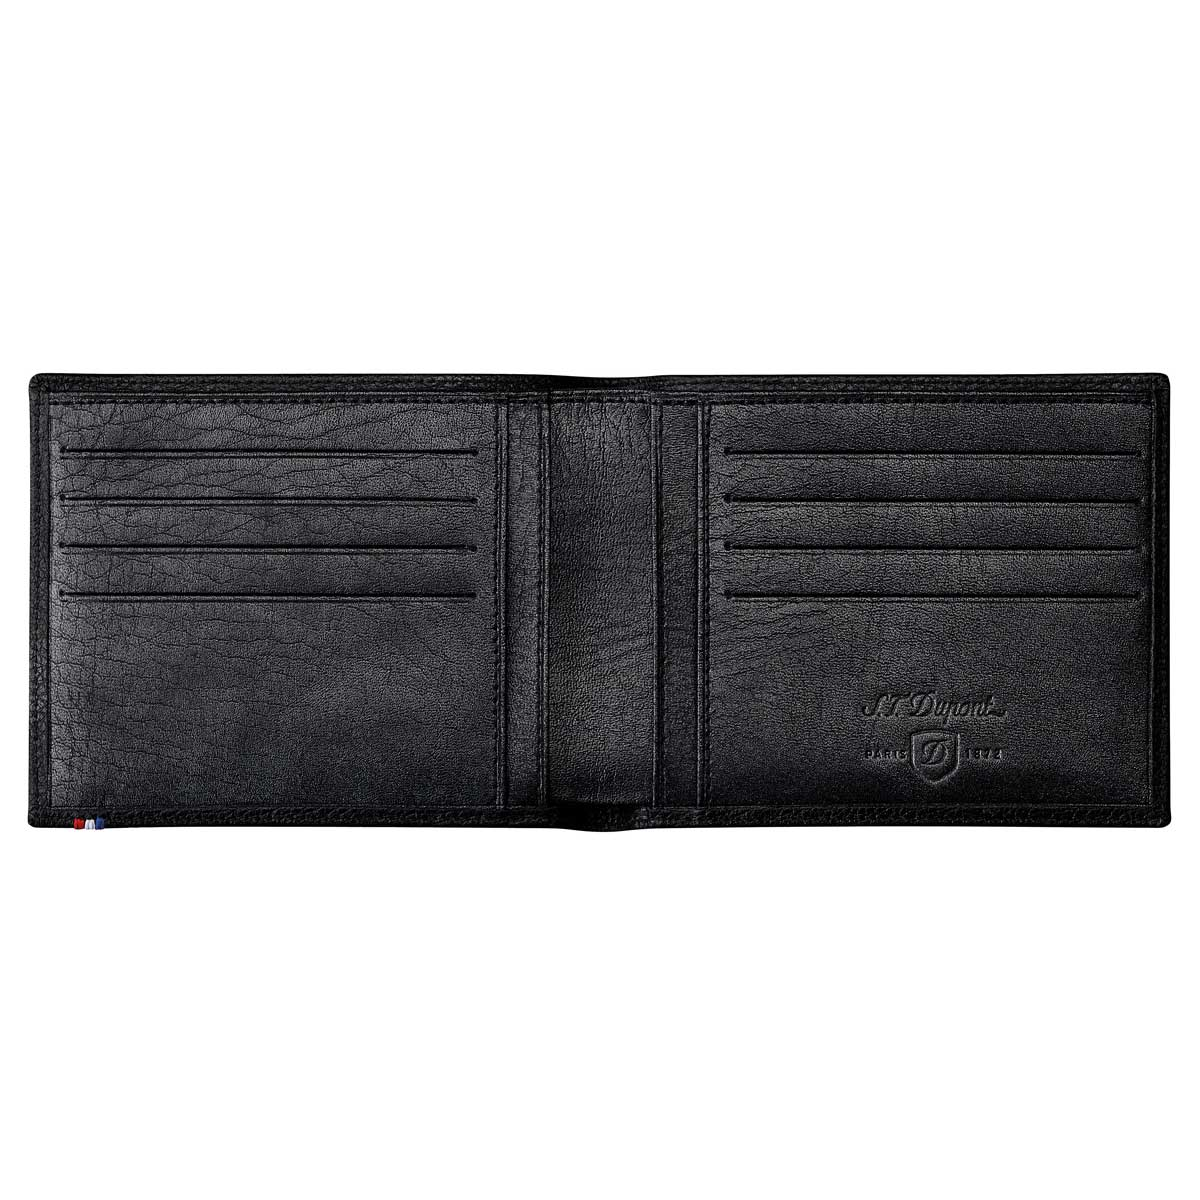 ST Dupont Soft Diamond Grained Black Leather Men's RFID Bifold Wallet - 8 Credit Card